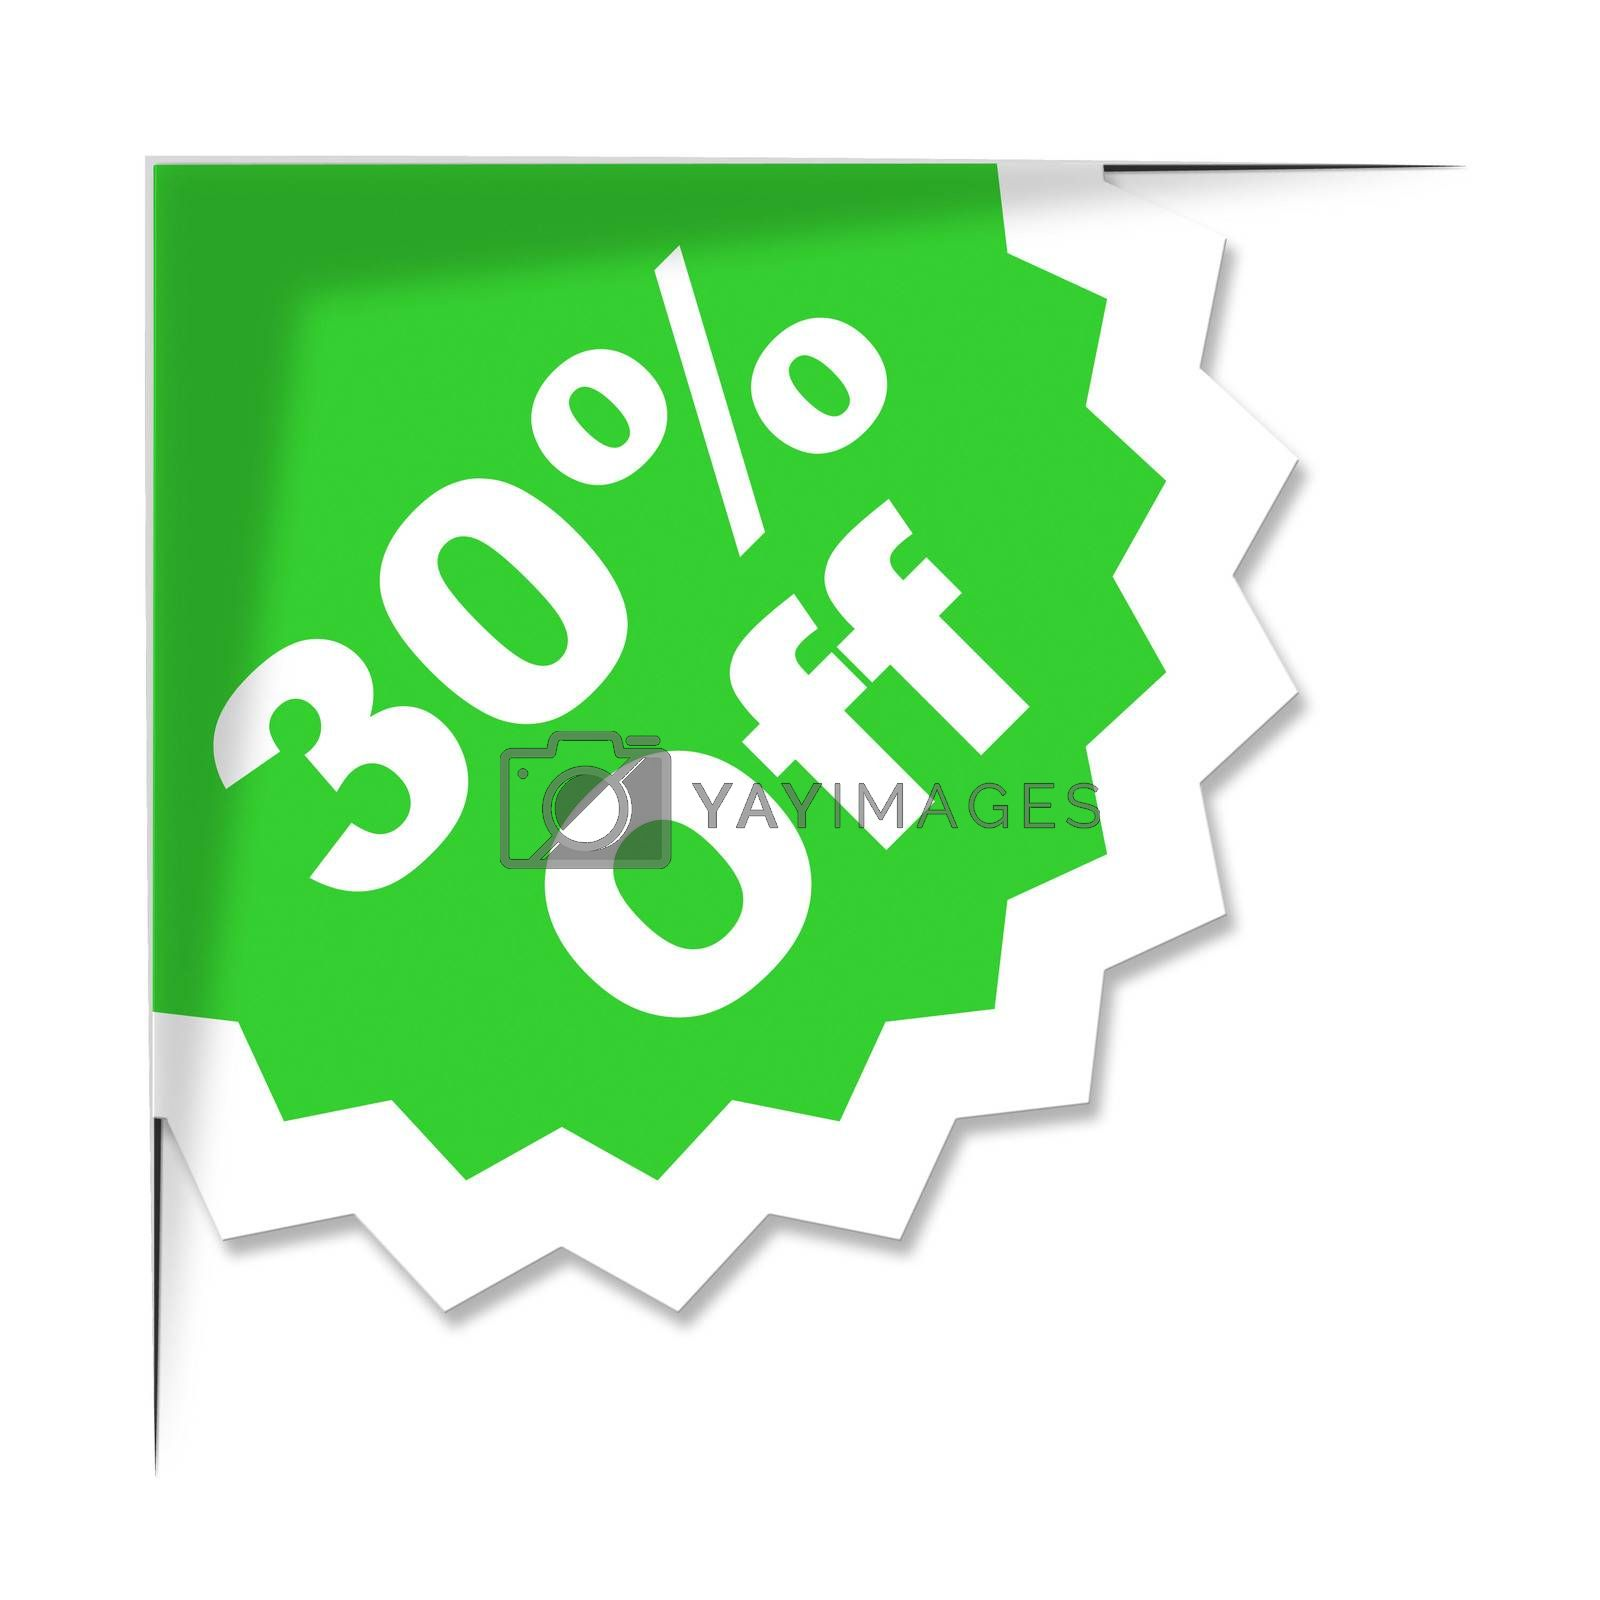 Thirty Percent Off Shows Promotional Reduction And Discounts by stuartmiles